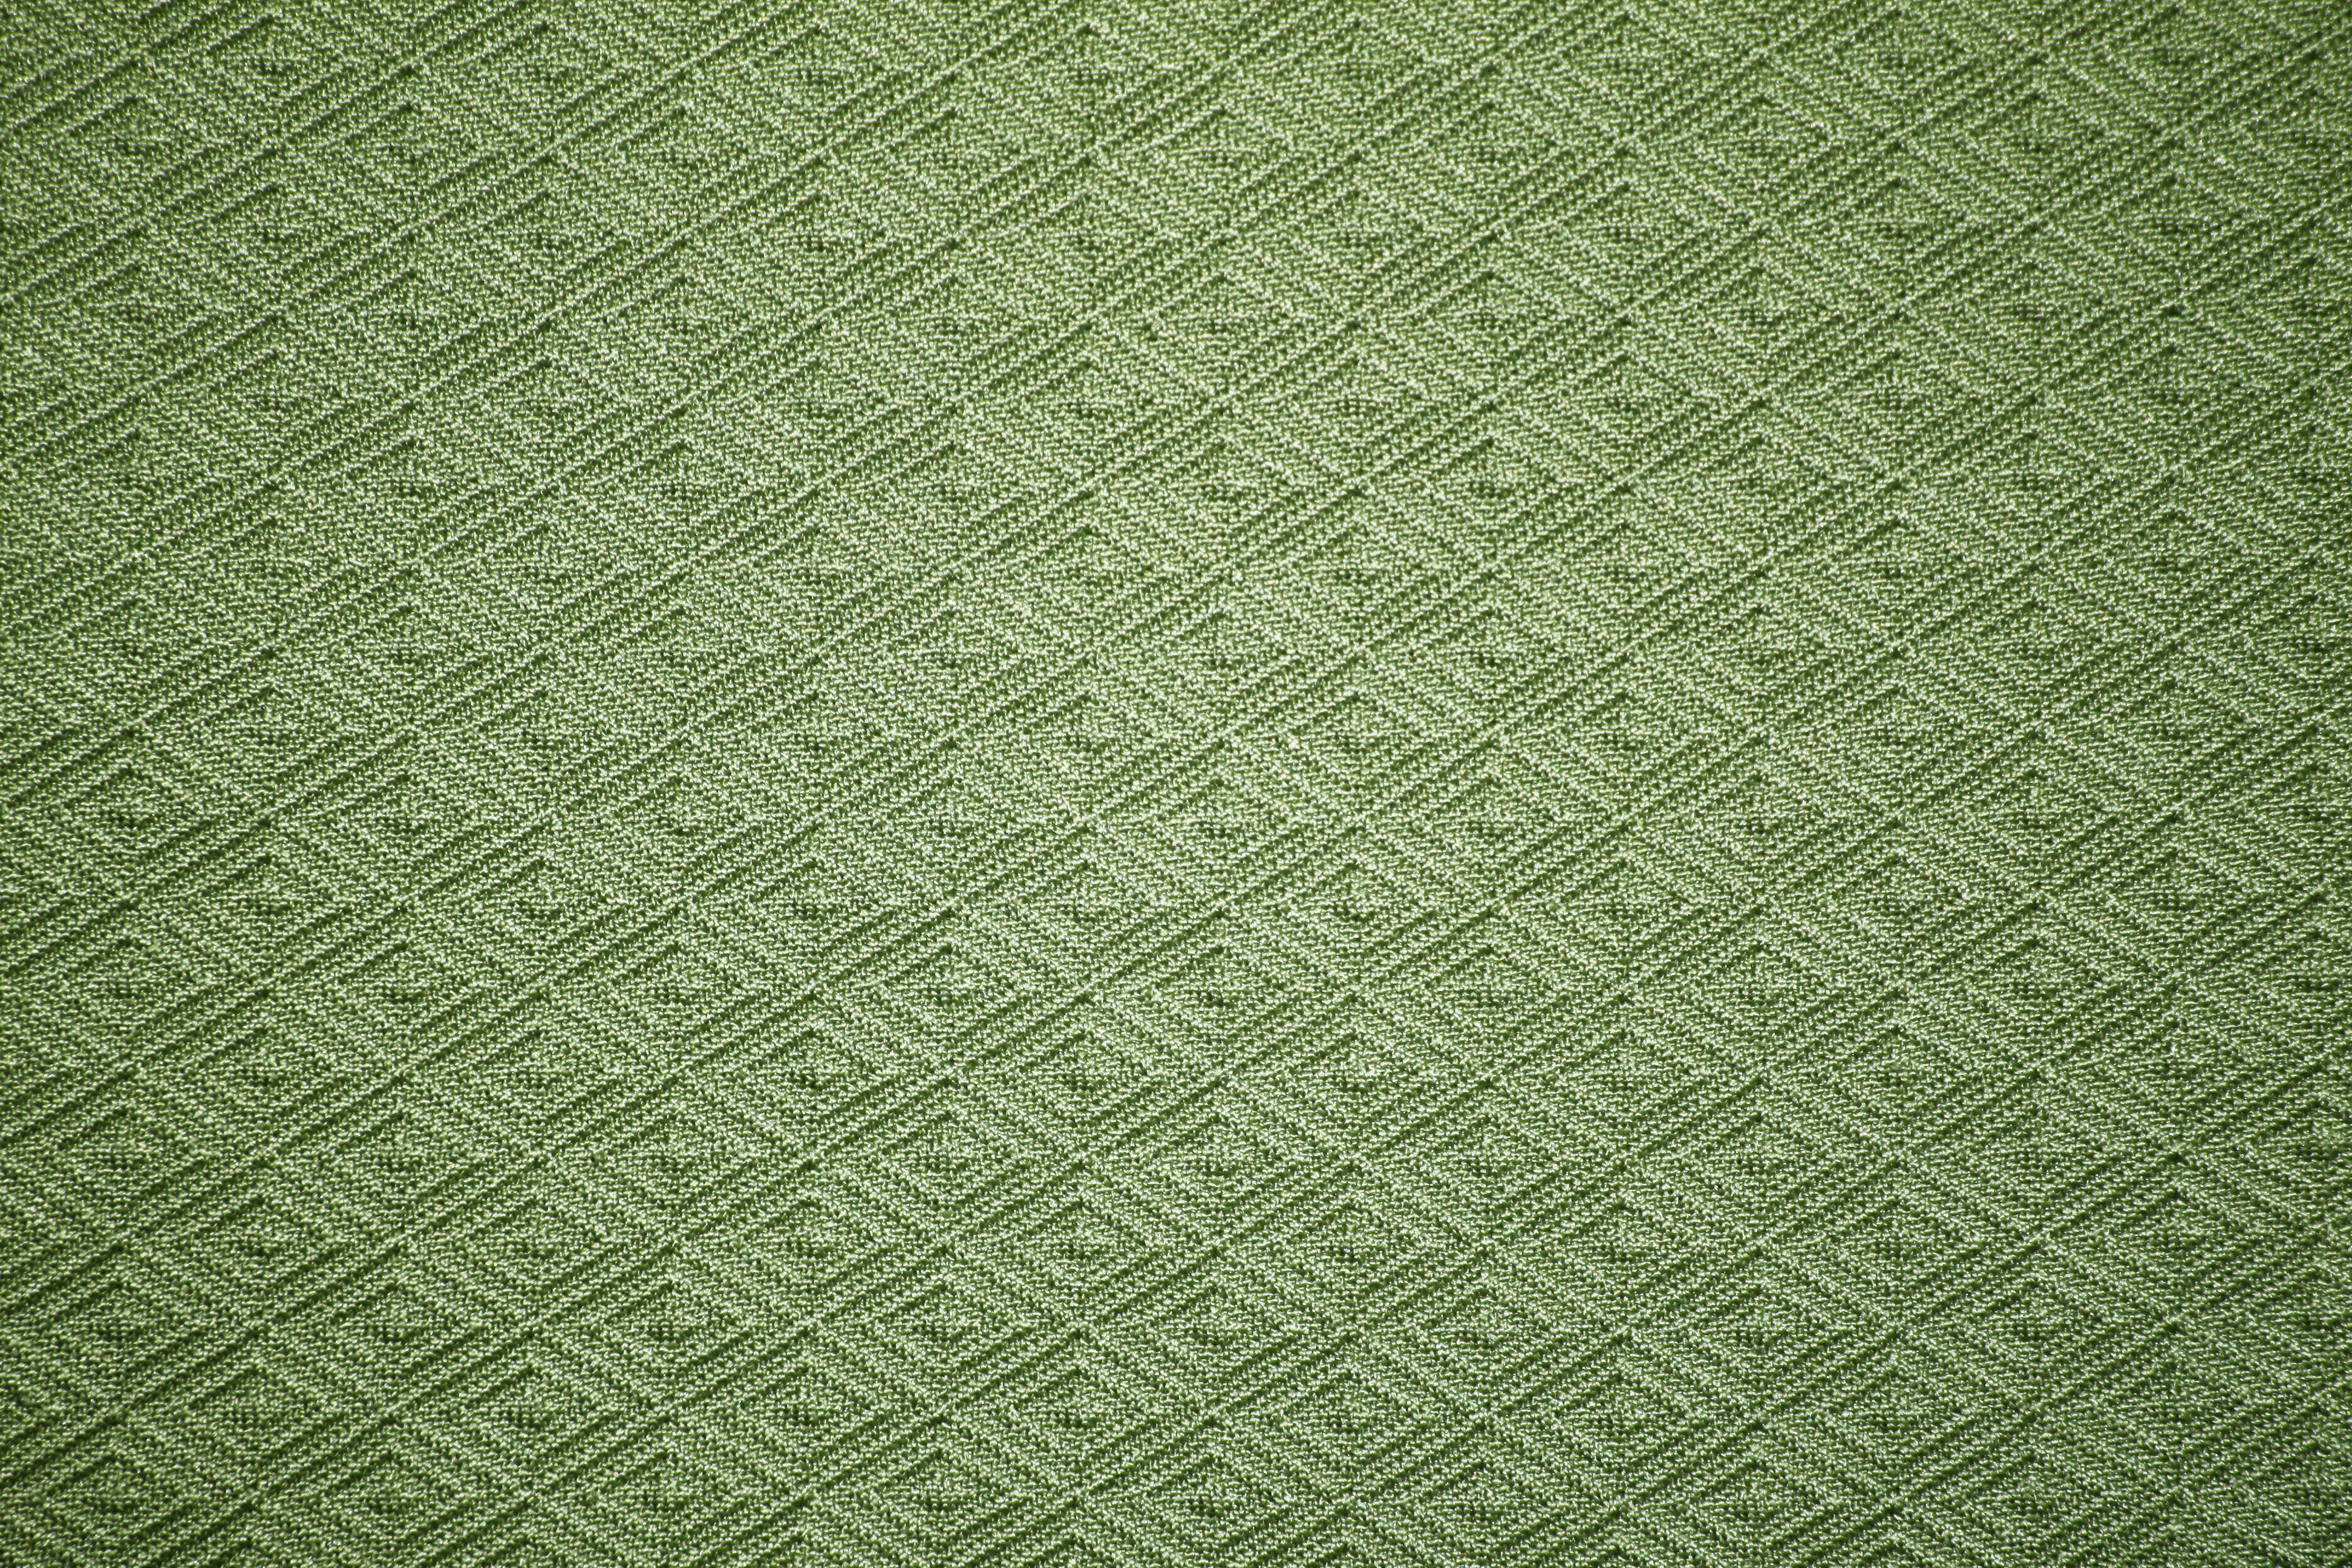 Olive Green Knit Fabric With Diamond Pattern Texture